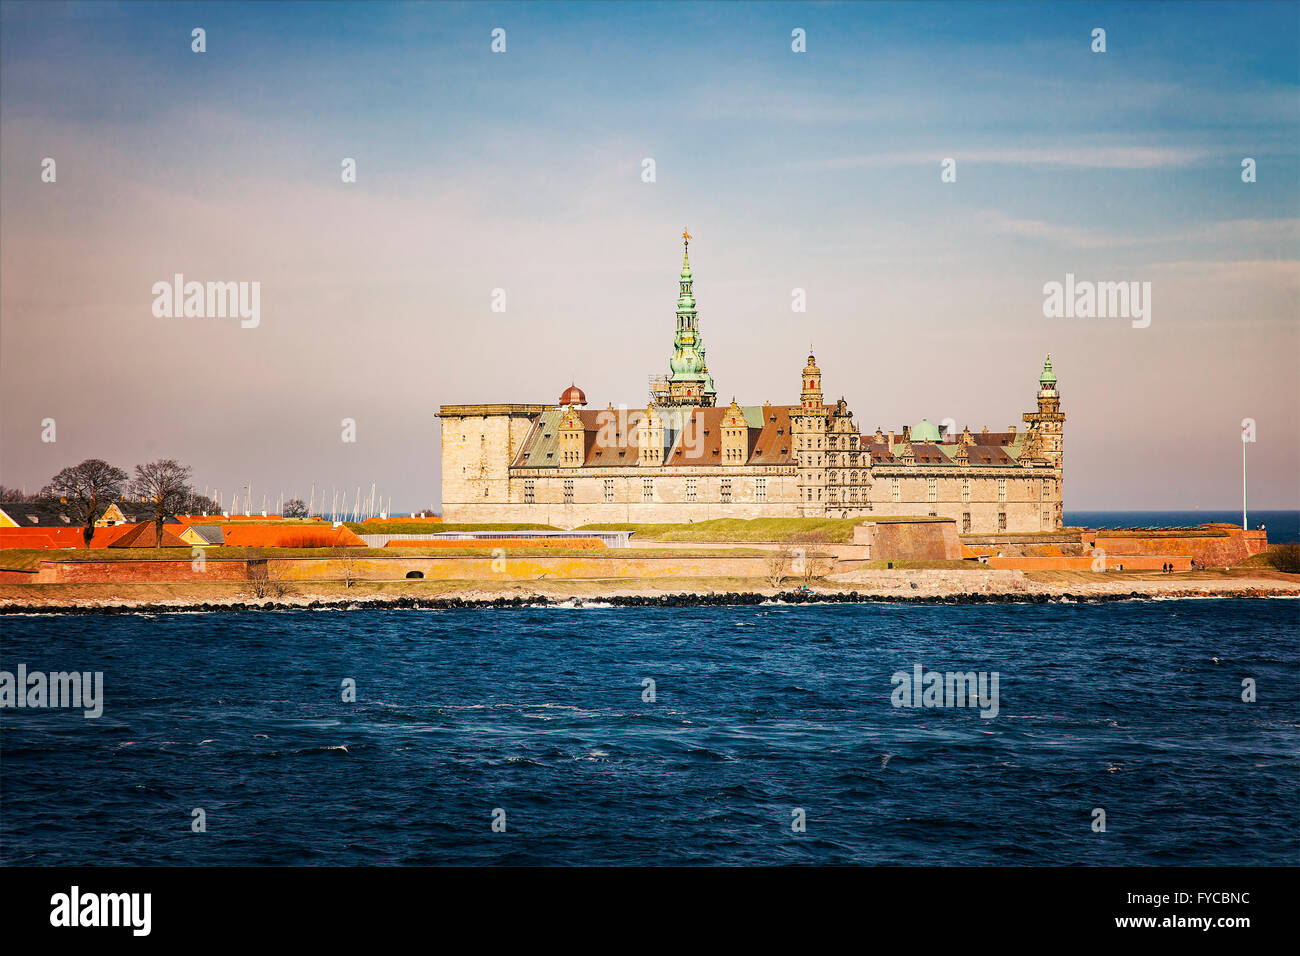 Image of Kronborg Castle in Helsingor, Denmark. - Stock Image